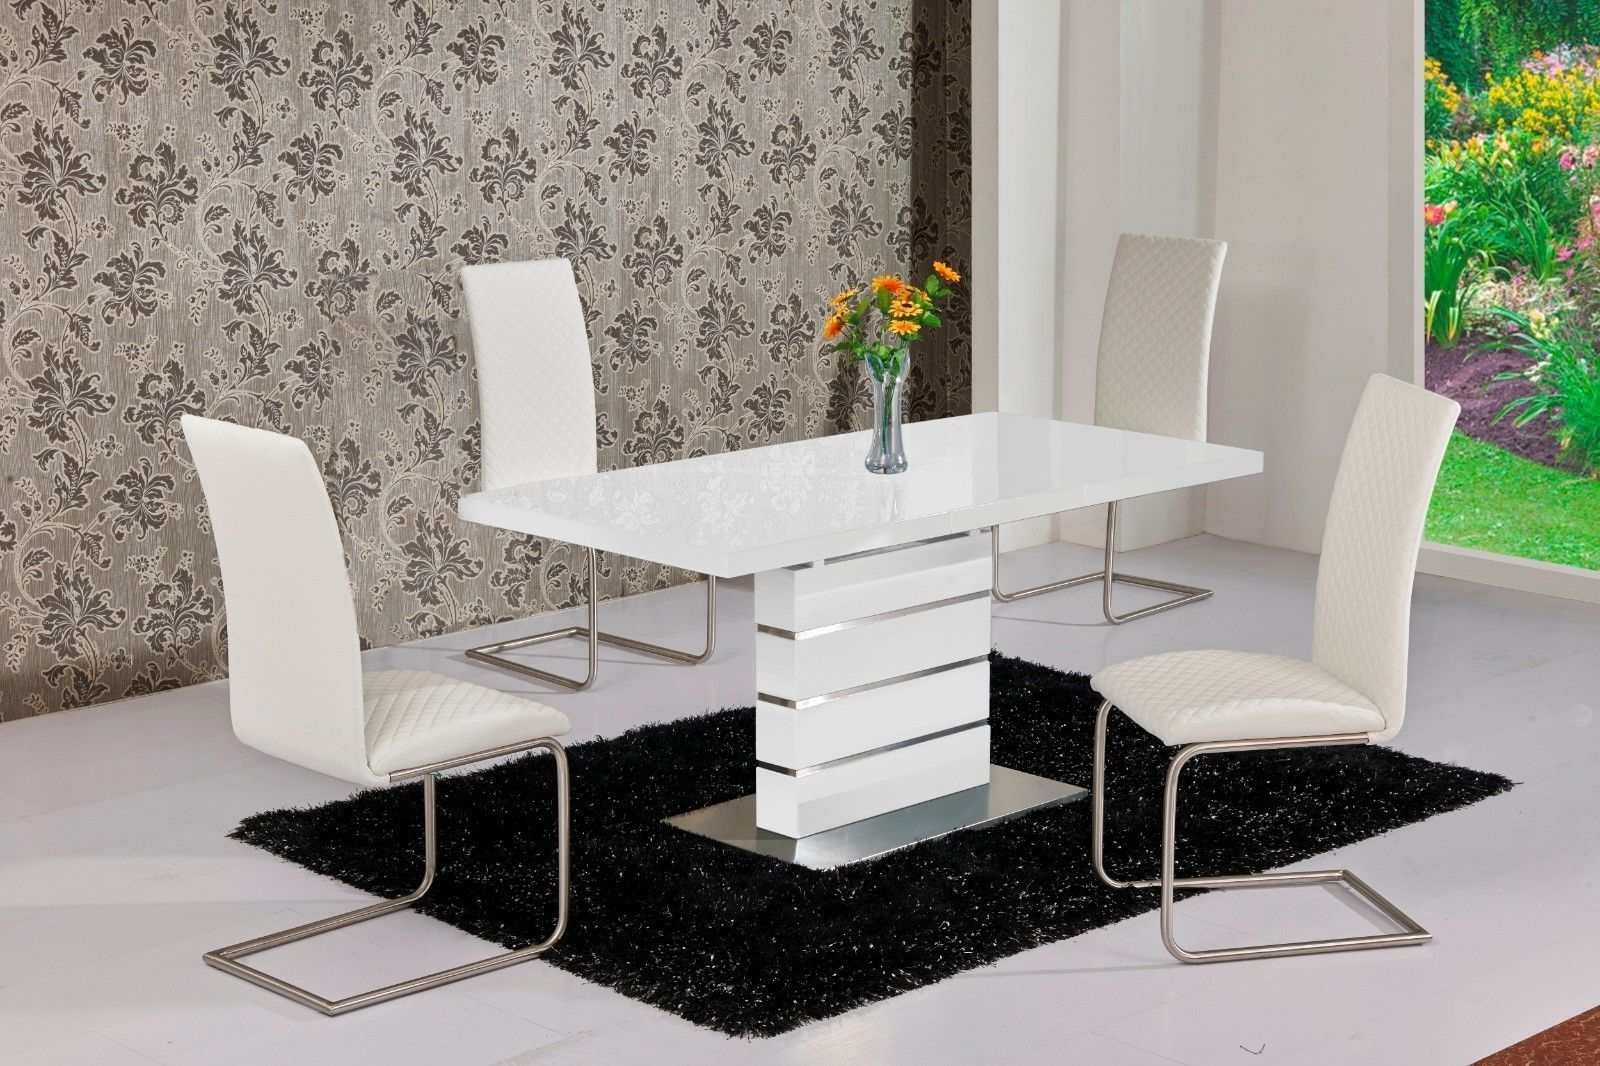 Gloss White Dining Tables with regard to Most Recent Mace High Gloss Extending 120-160 Dining Table & Chair Set - White